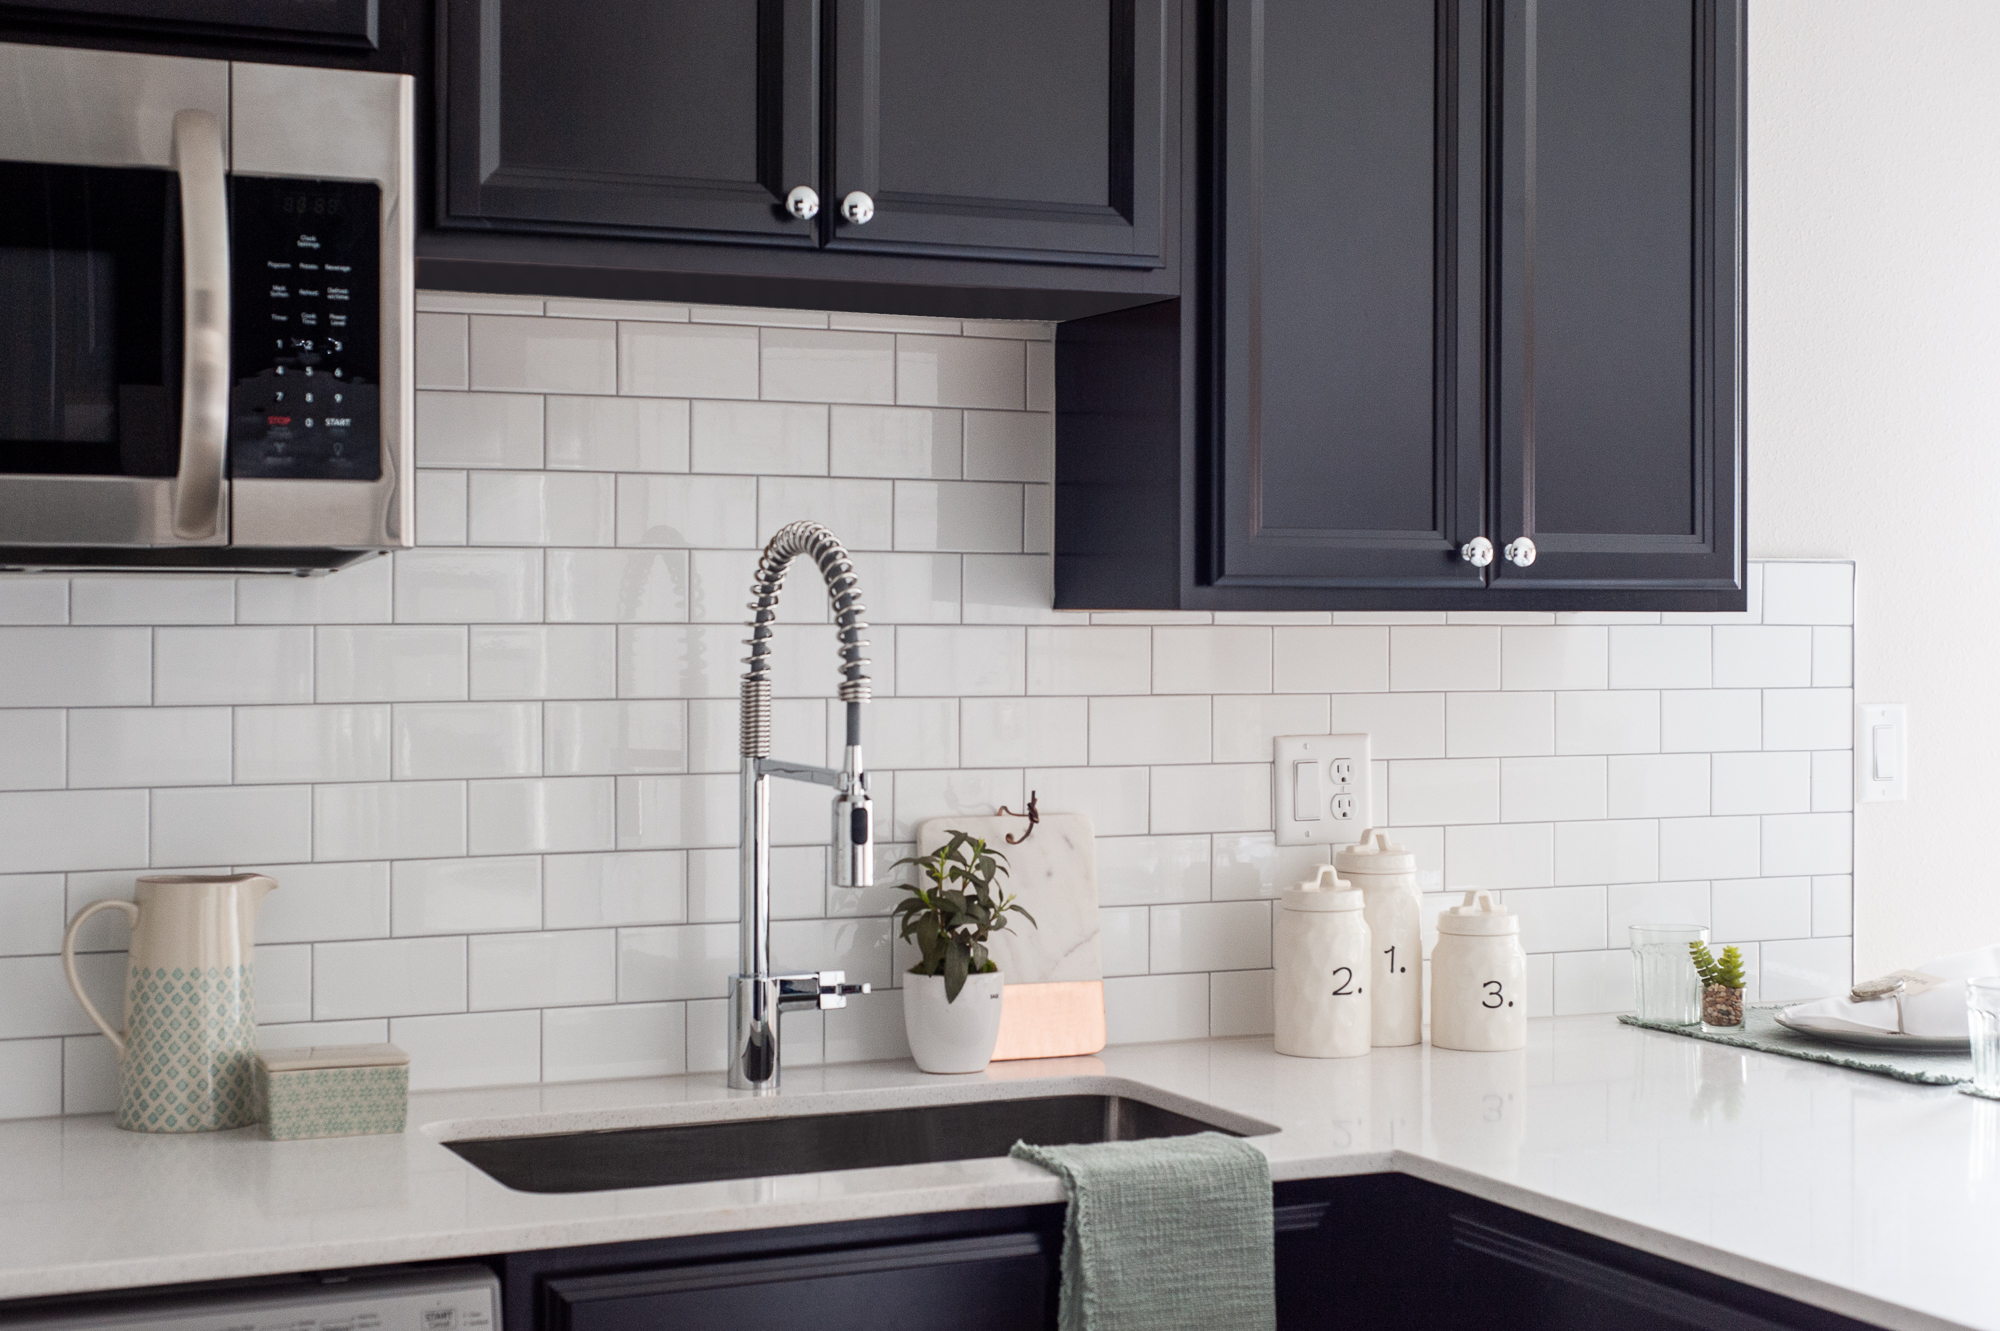 Micamy Design Studio_Model Home_Interior Design_Orchard Cove_Modern Coastal_Guest Suite_Kitchenette_Next Generation Suite_Small Kitchen_Dark Cabinets_White Subway.jpg